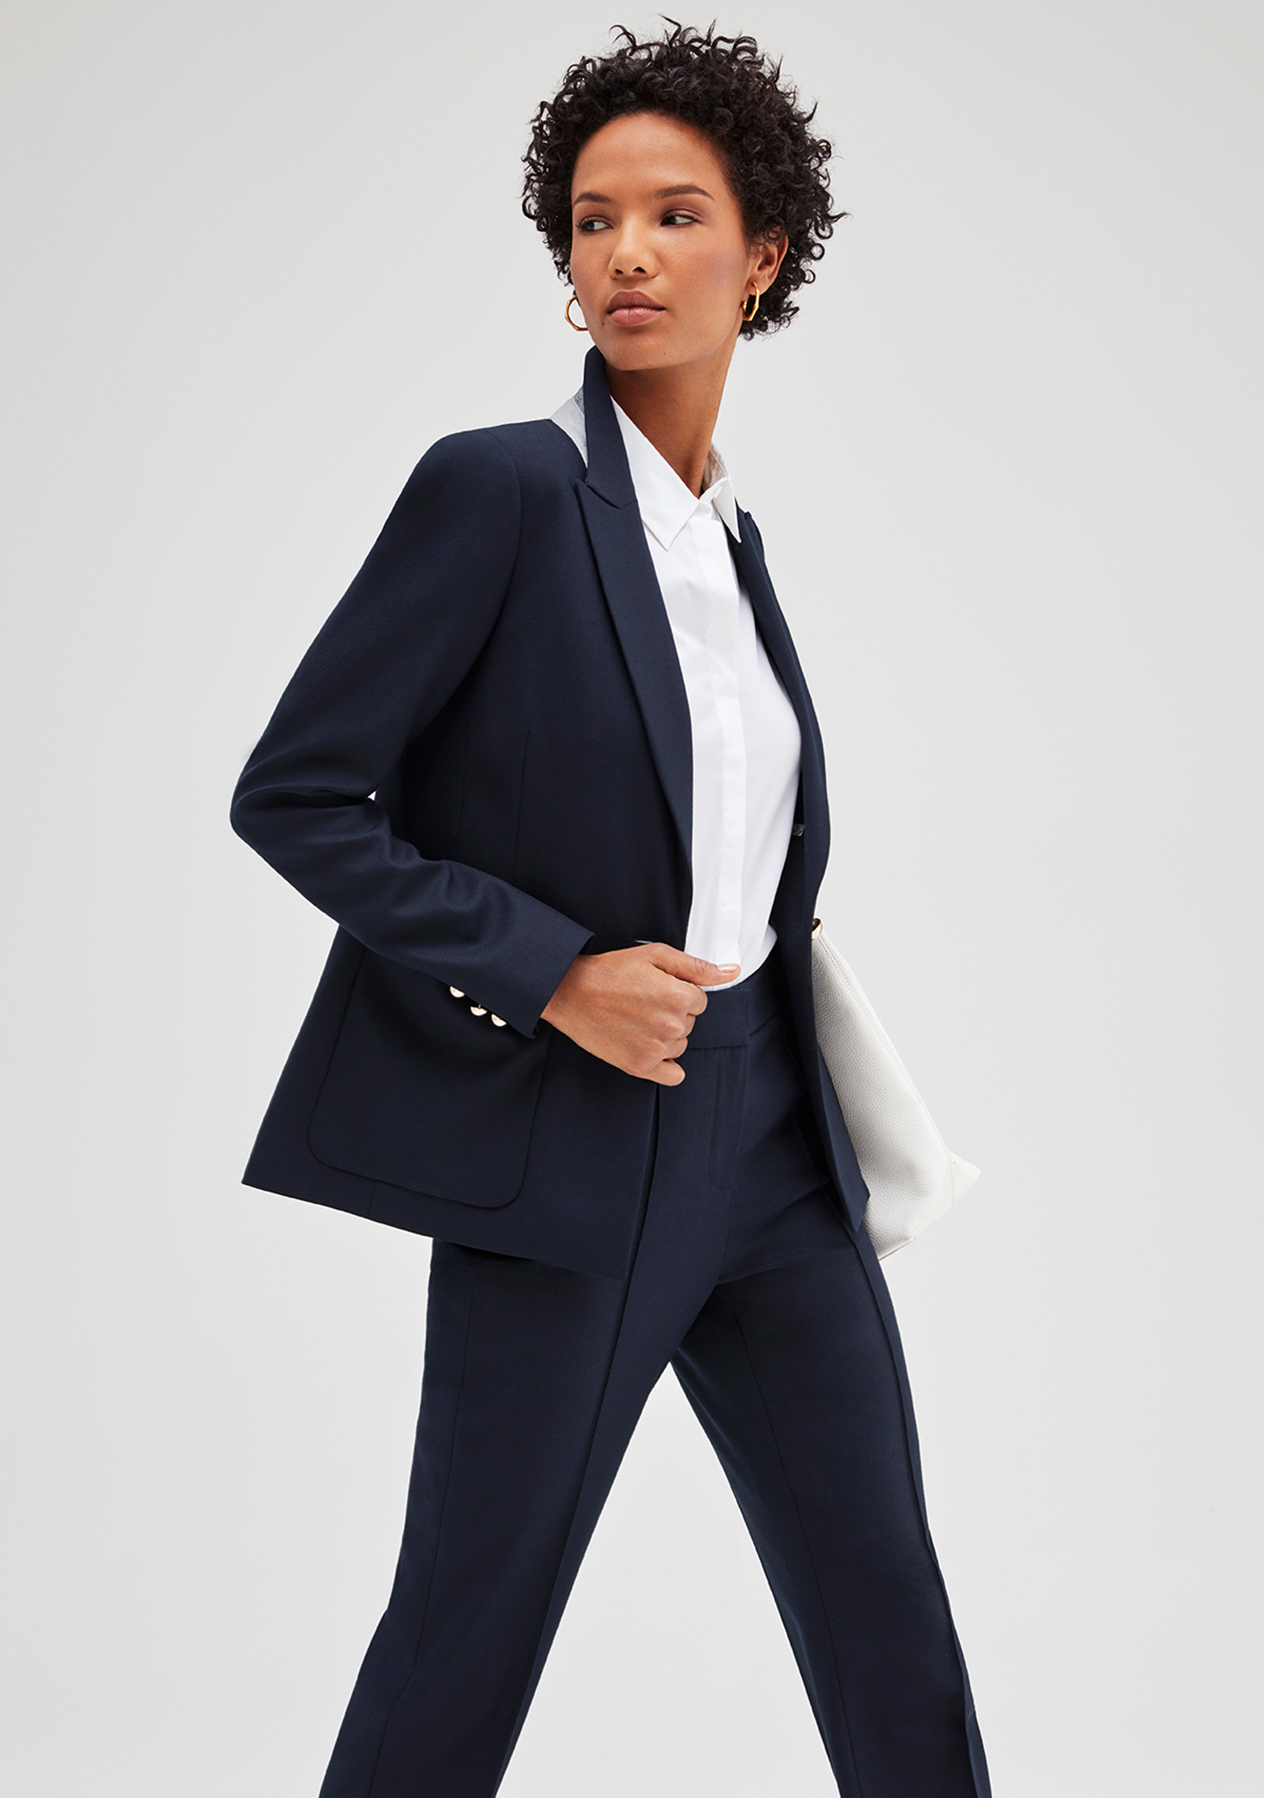 Model poses in a classic nevy blue tailored trouser suit styled with a white shirt